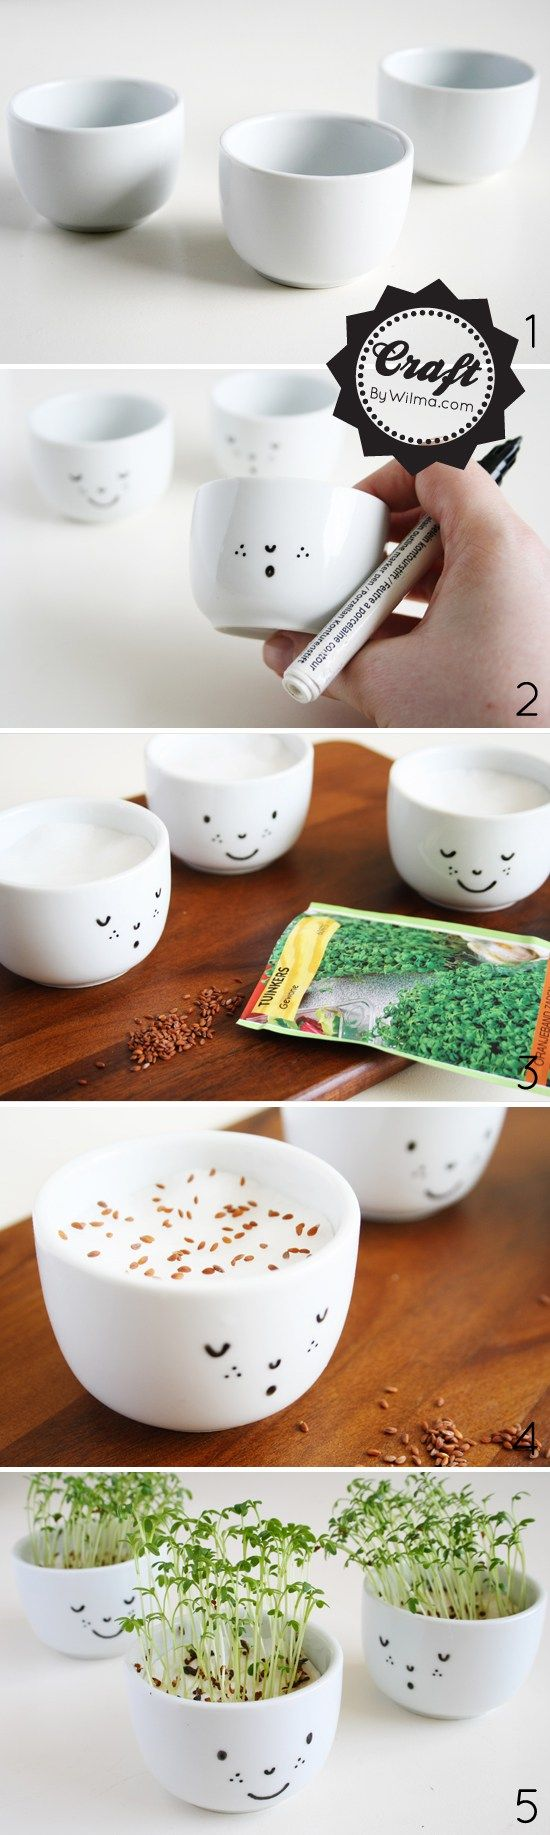 WHAT YOU NEED FOR CRESS CUPS WITH A FACE  – white sake cups (a small bowl or teacup will work too) – black ceramic marker – oven – cotton pads – cress seeds